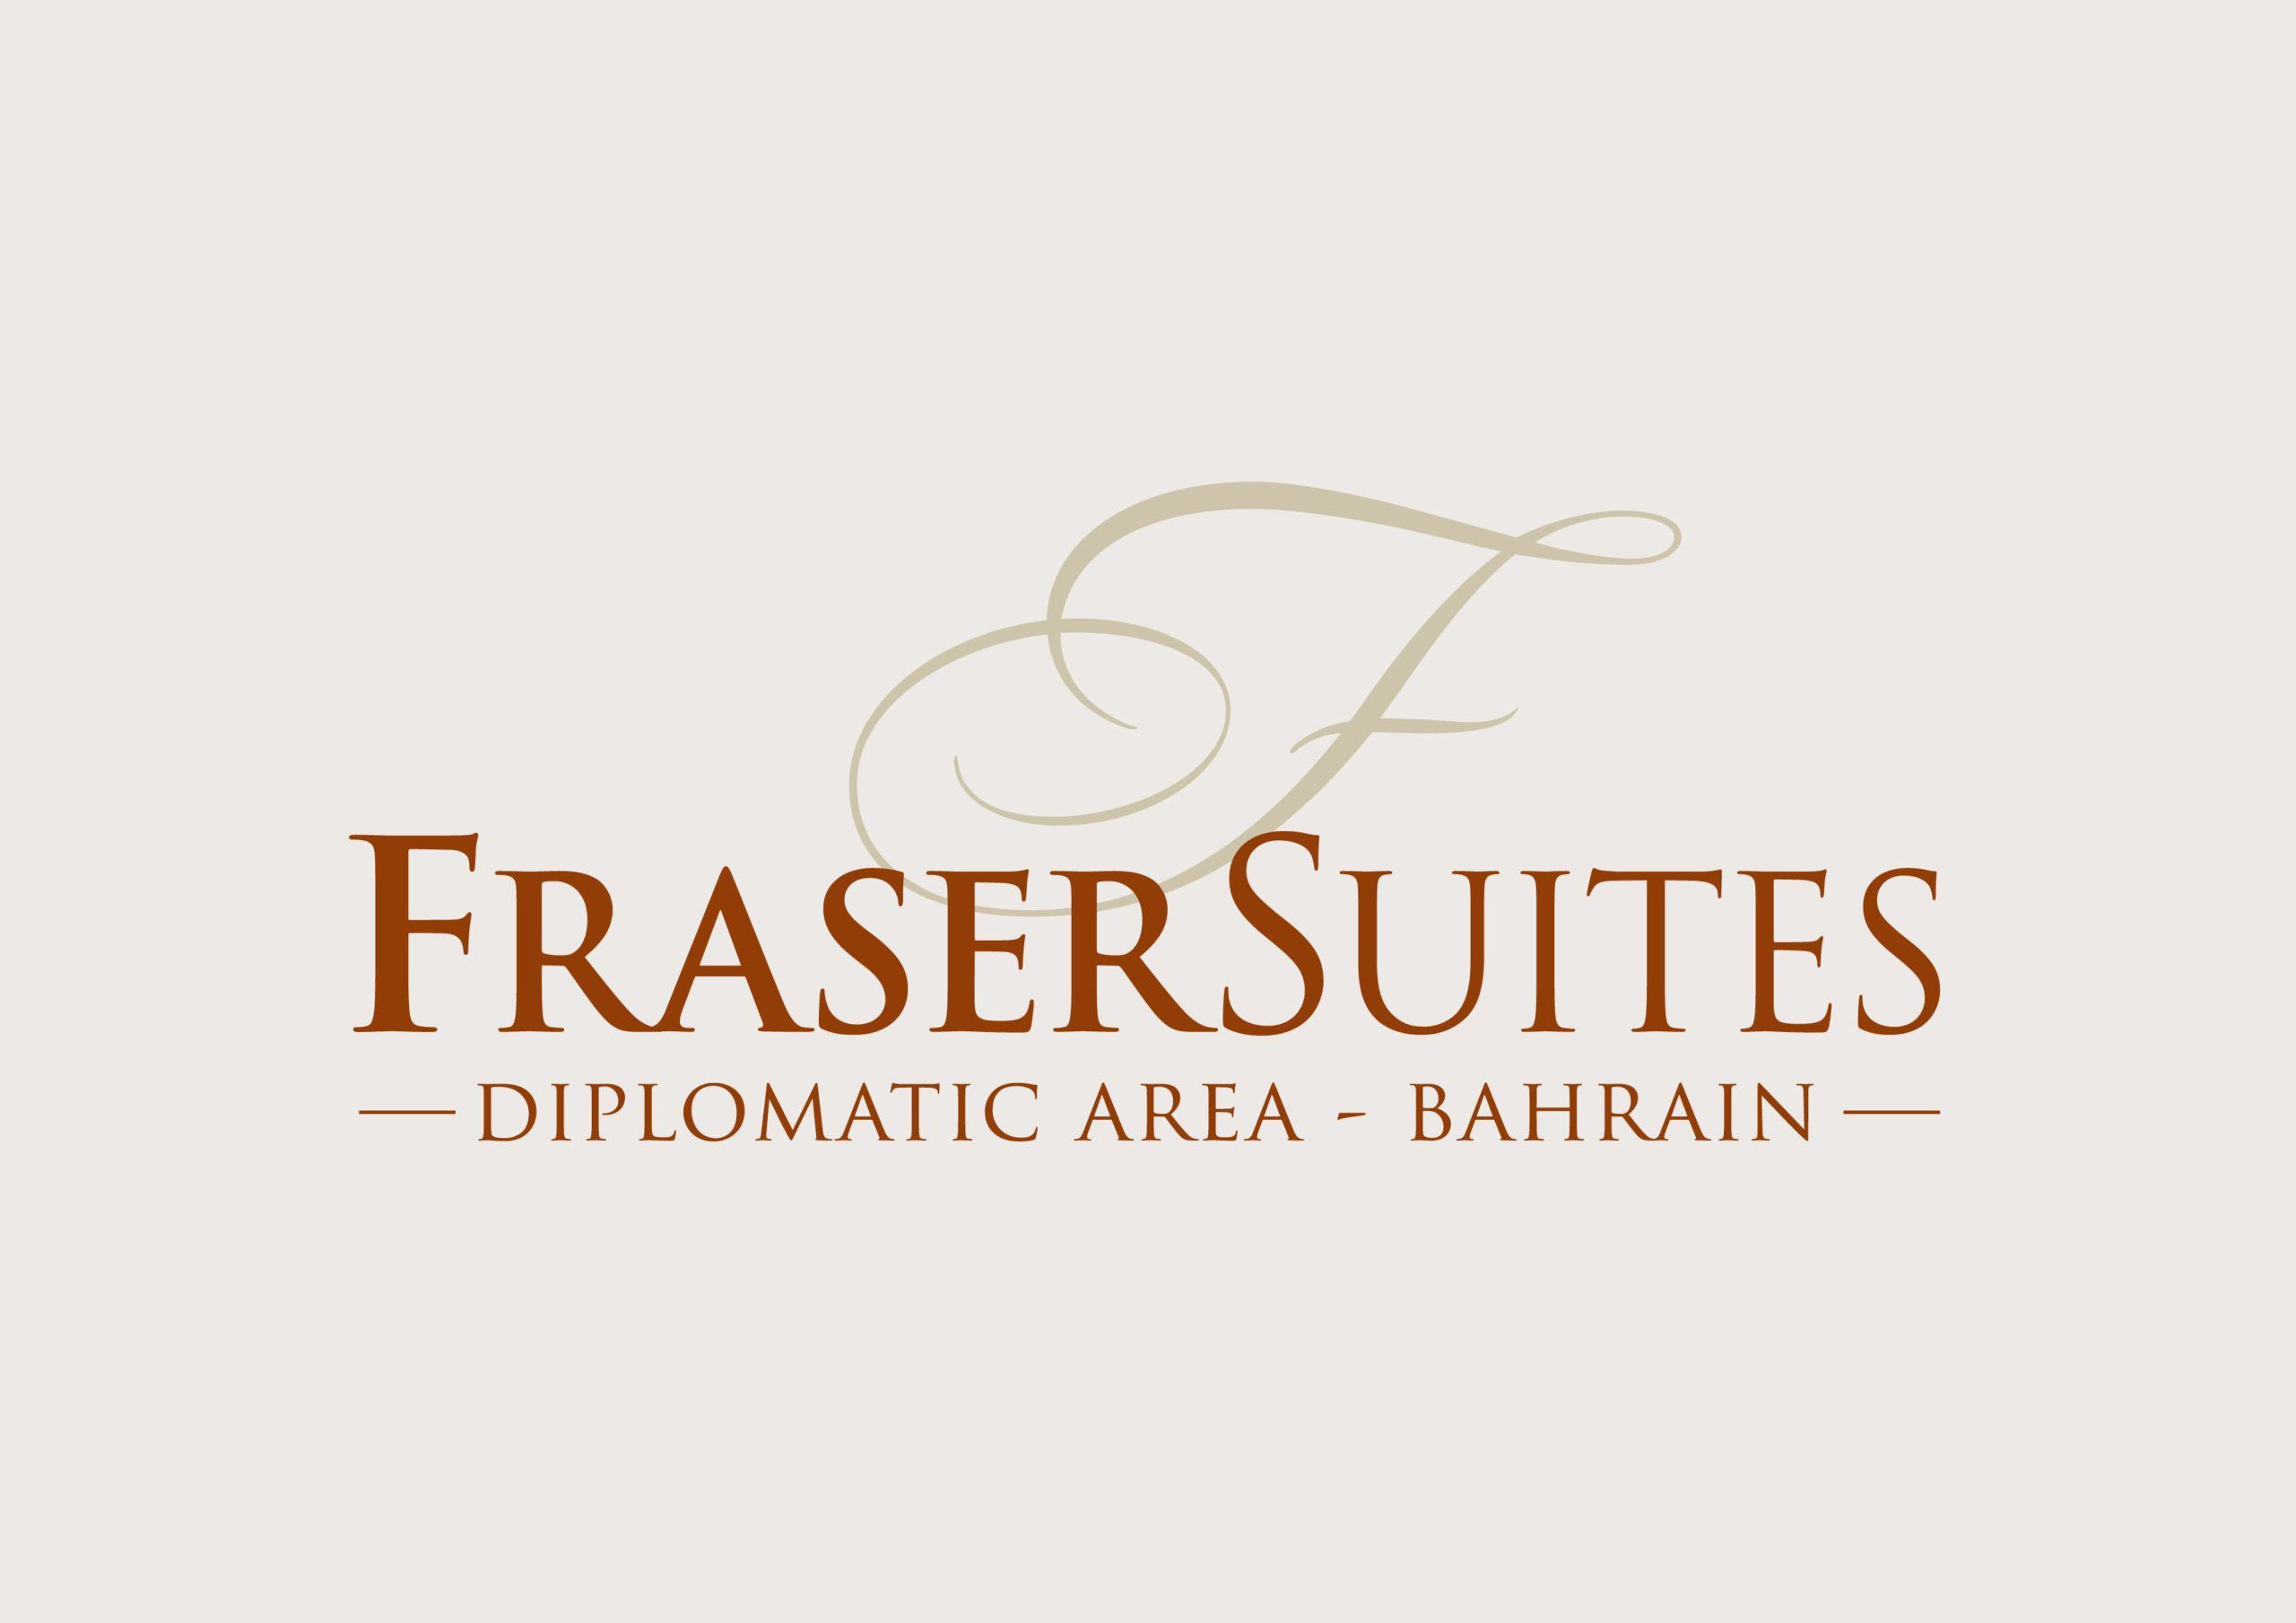 Fraser Suites, Diplomatic Area